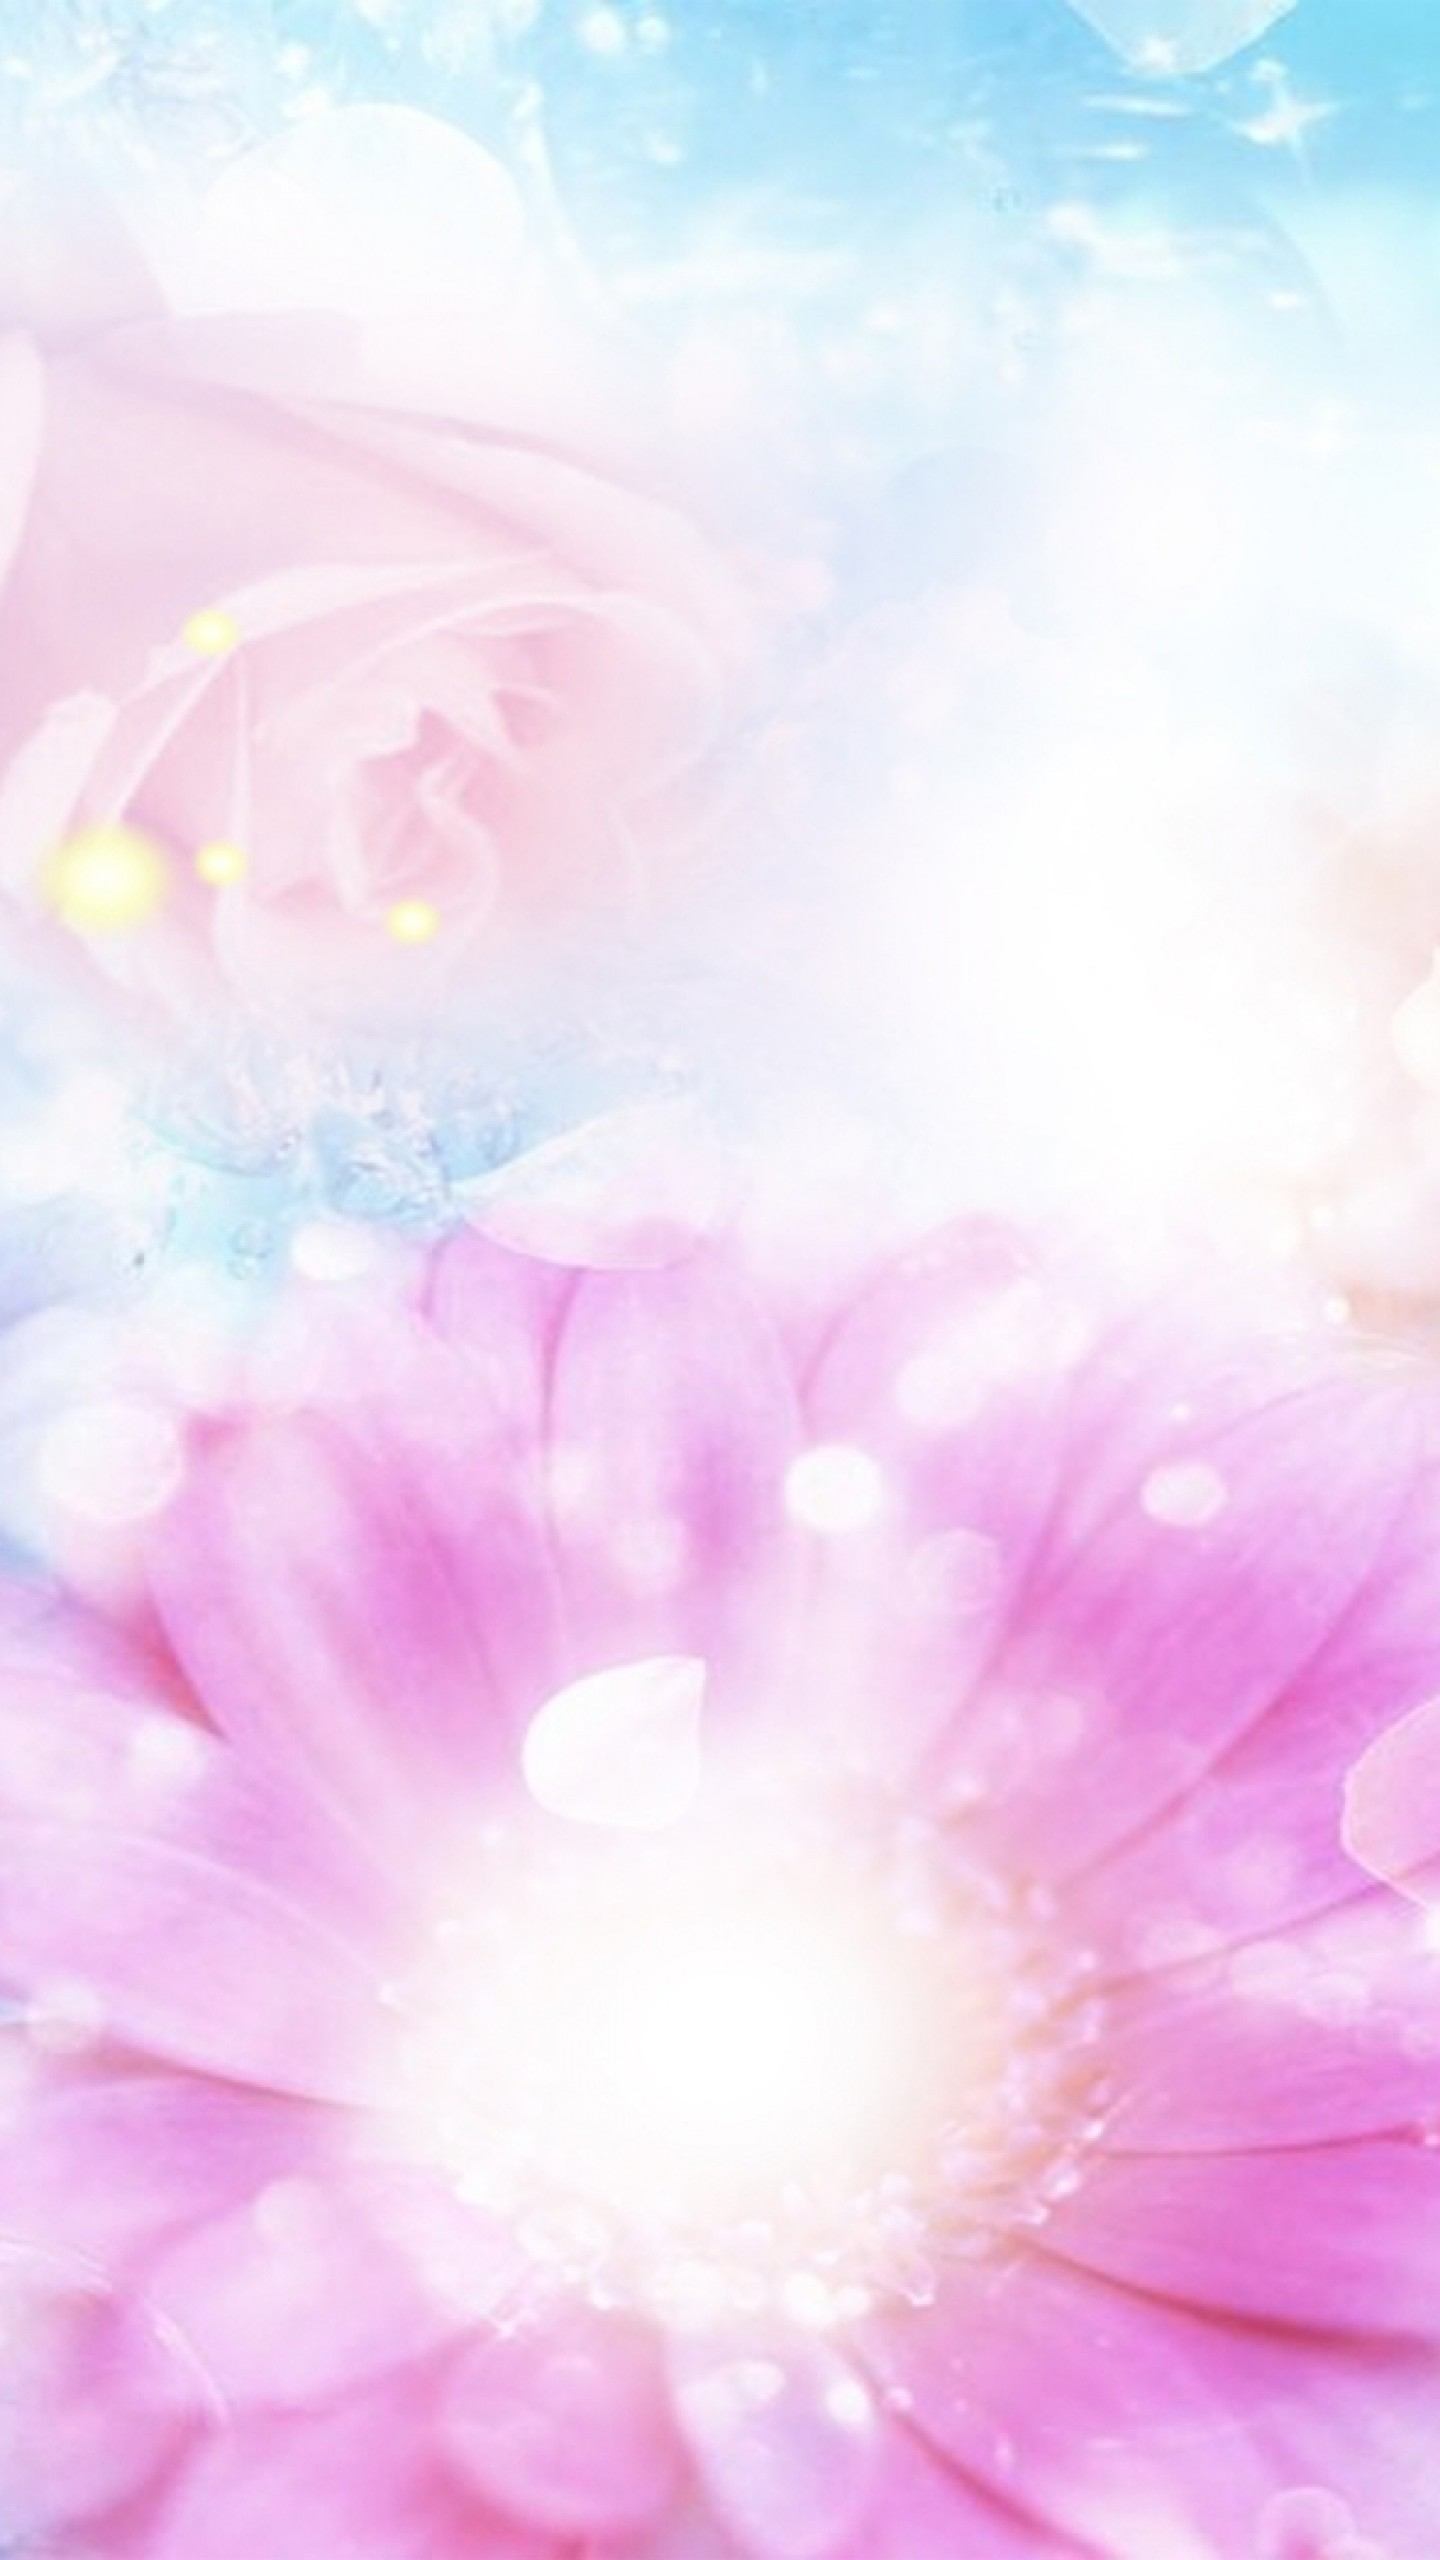 1440x2560  Wallpaper pink, blue, flowers, blurred, background, effects